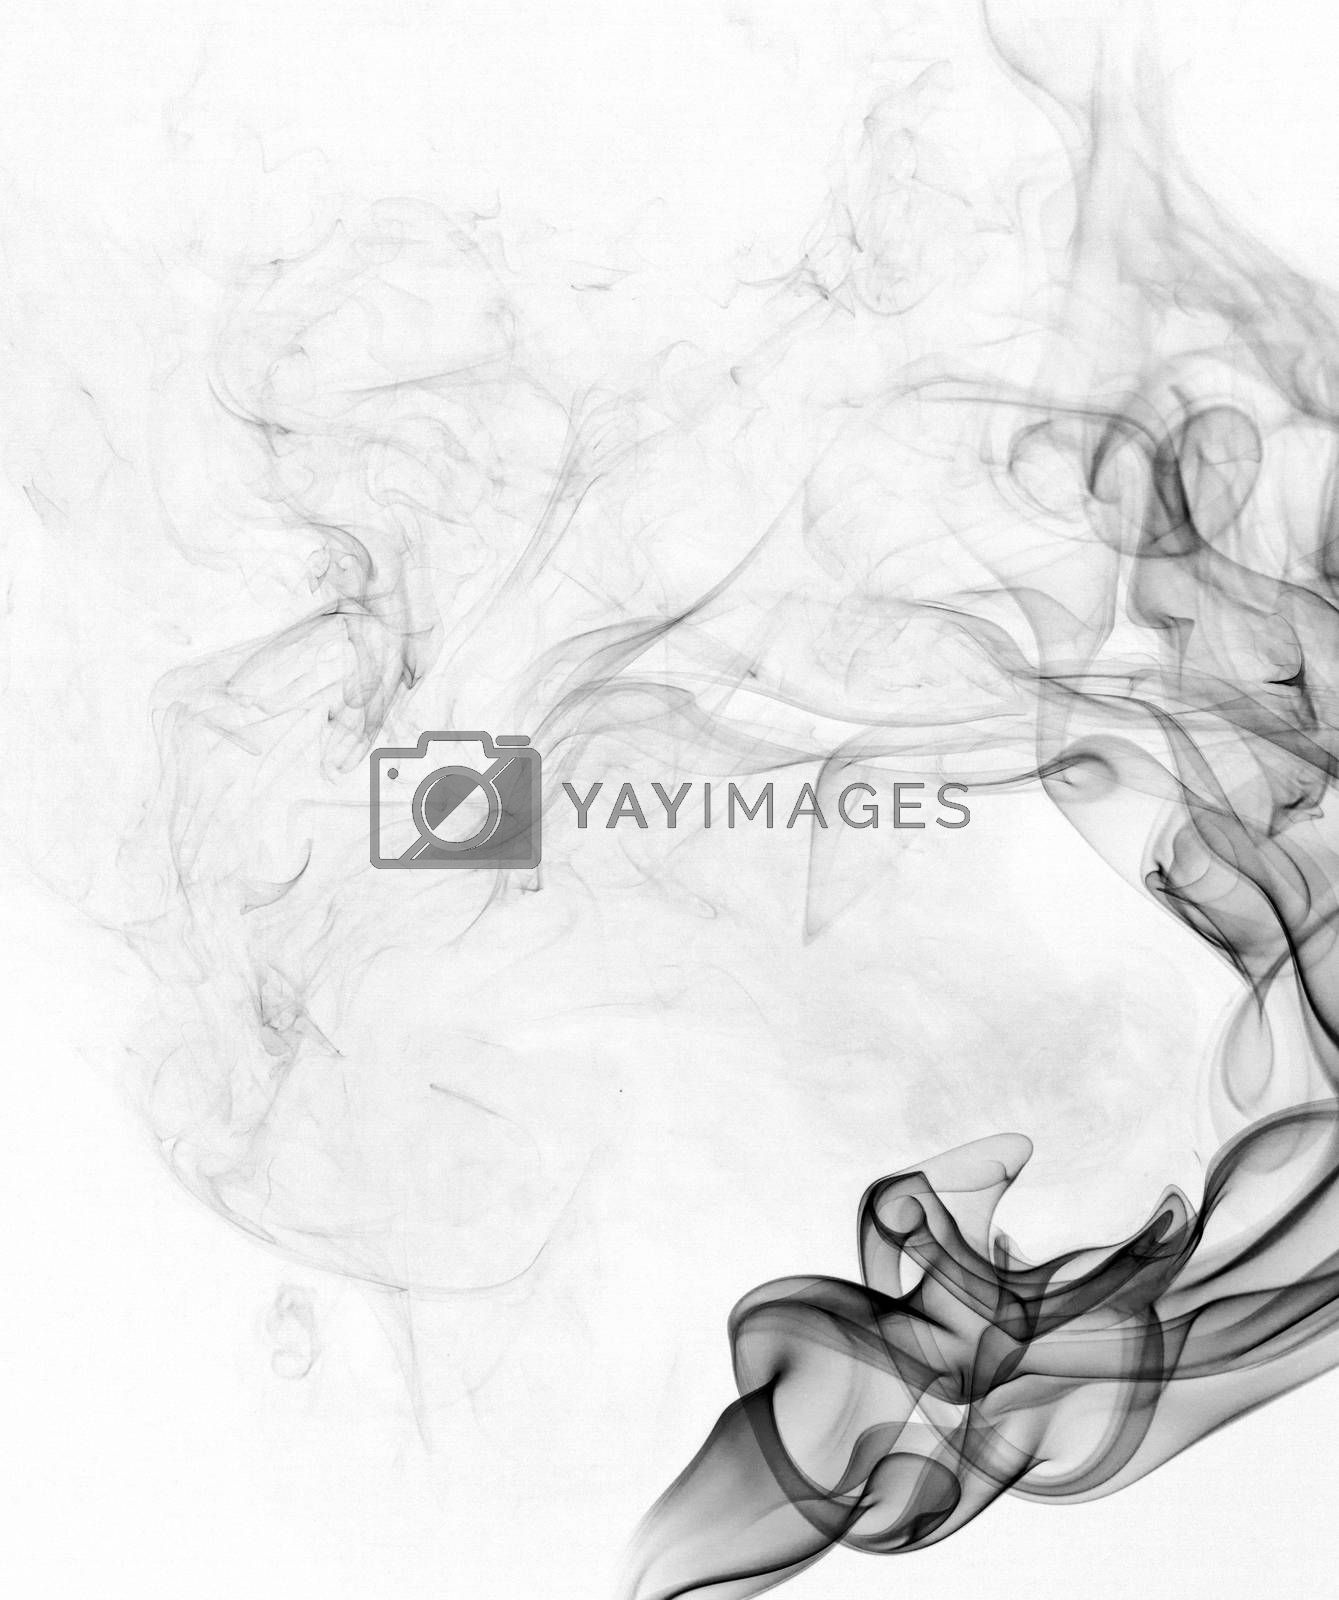 Royalty free image of Abstract smoke by Vagengeym